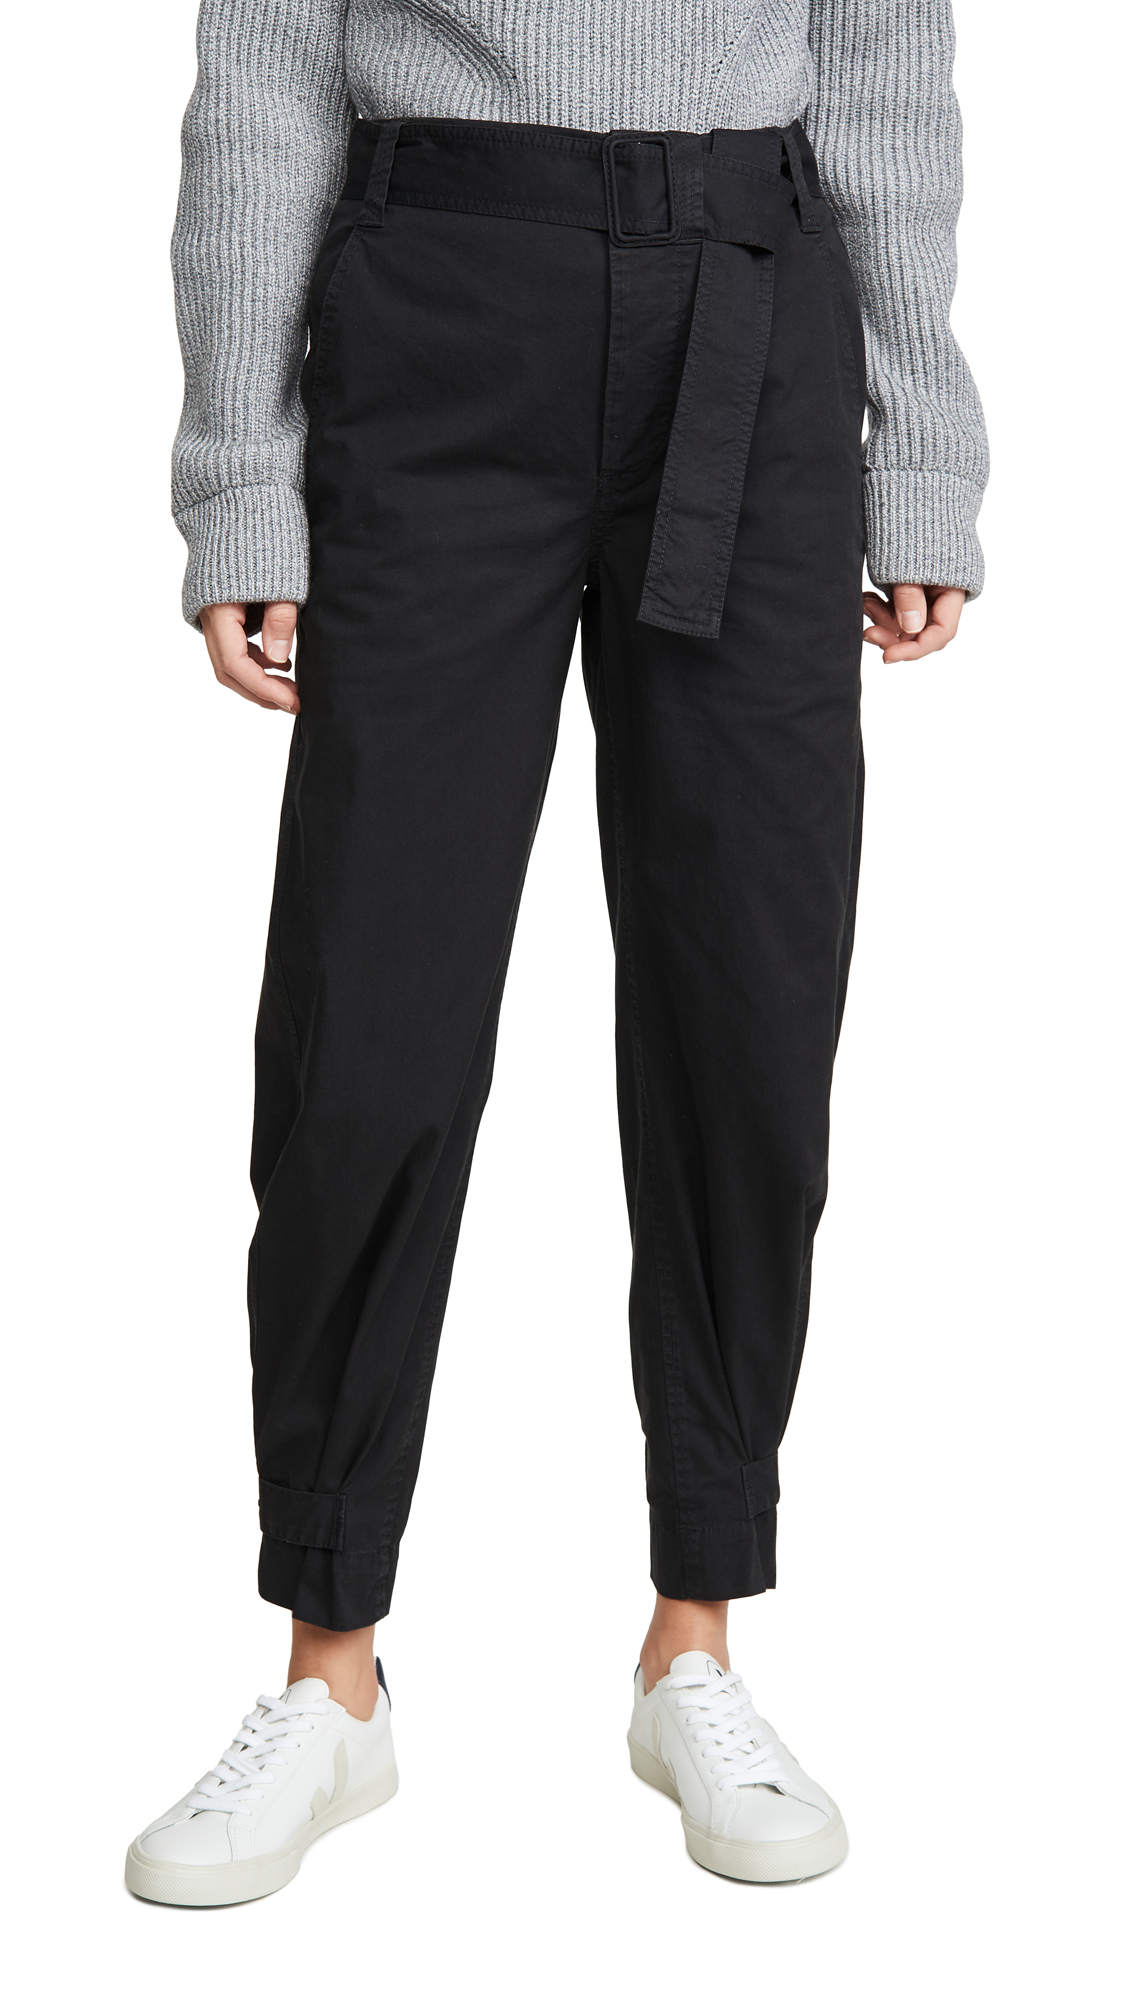 Buy Proenza Schouler White Label online - photo of Proenza Schouler White Label Cotton Belted Pants